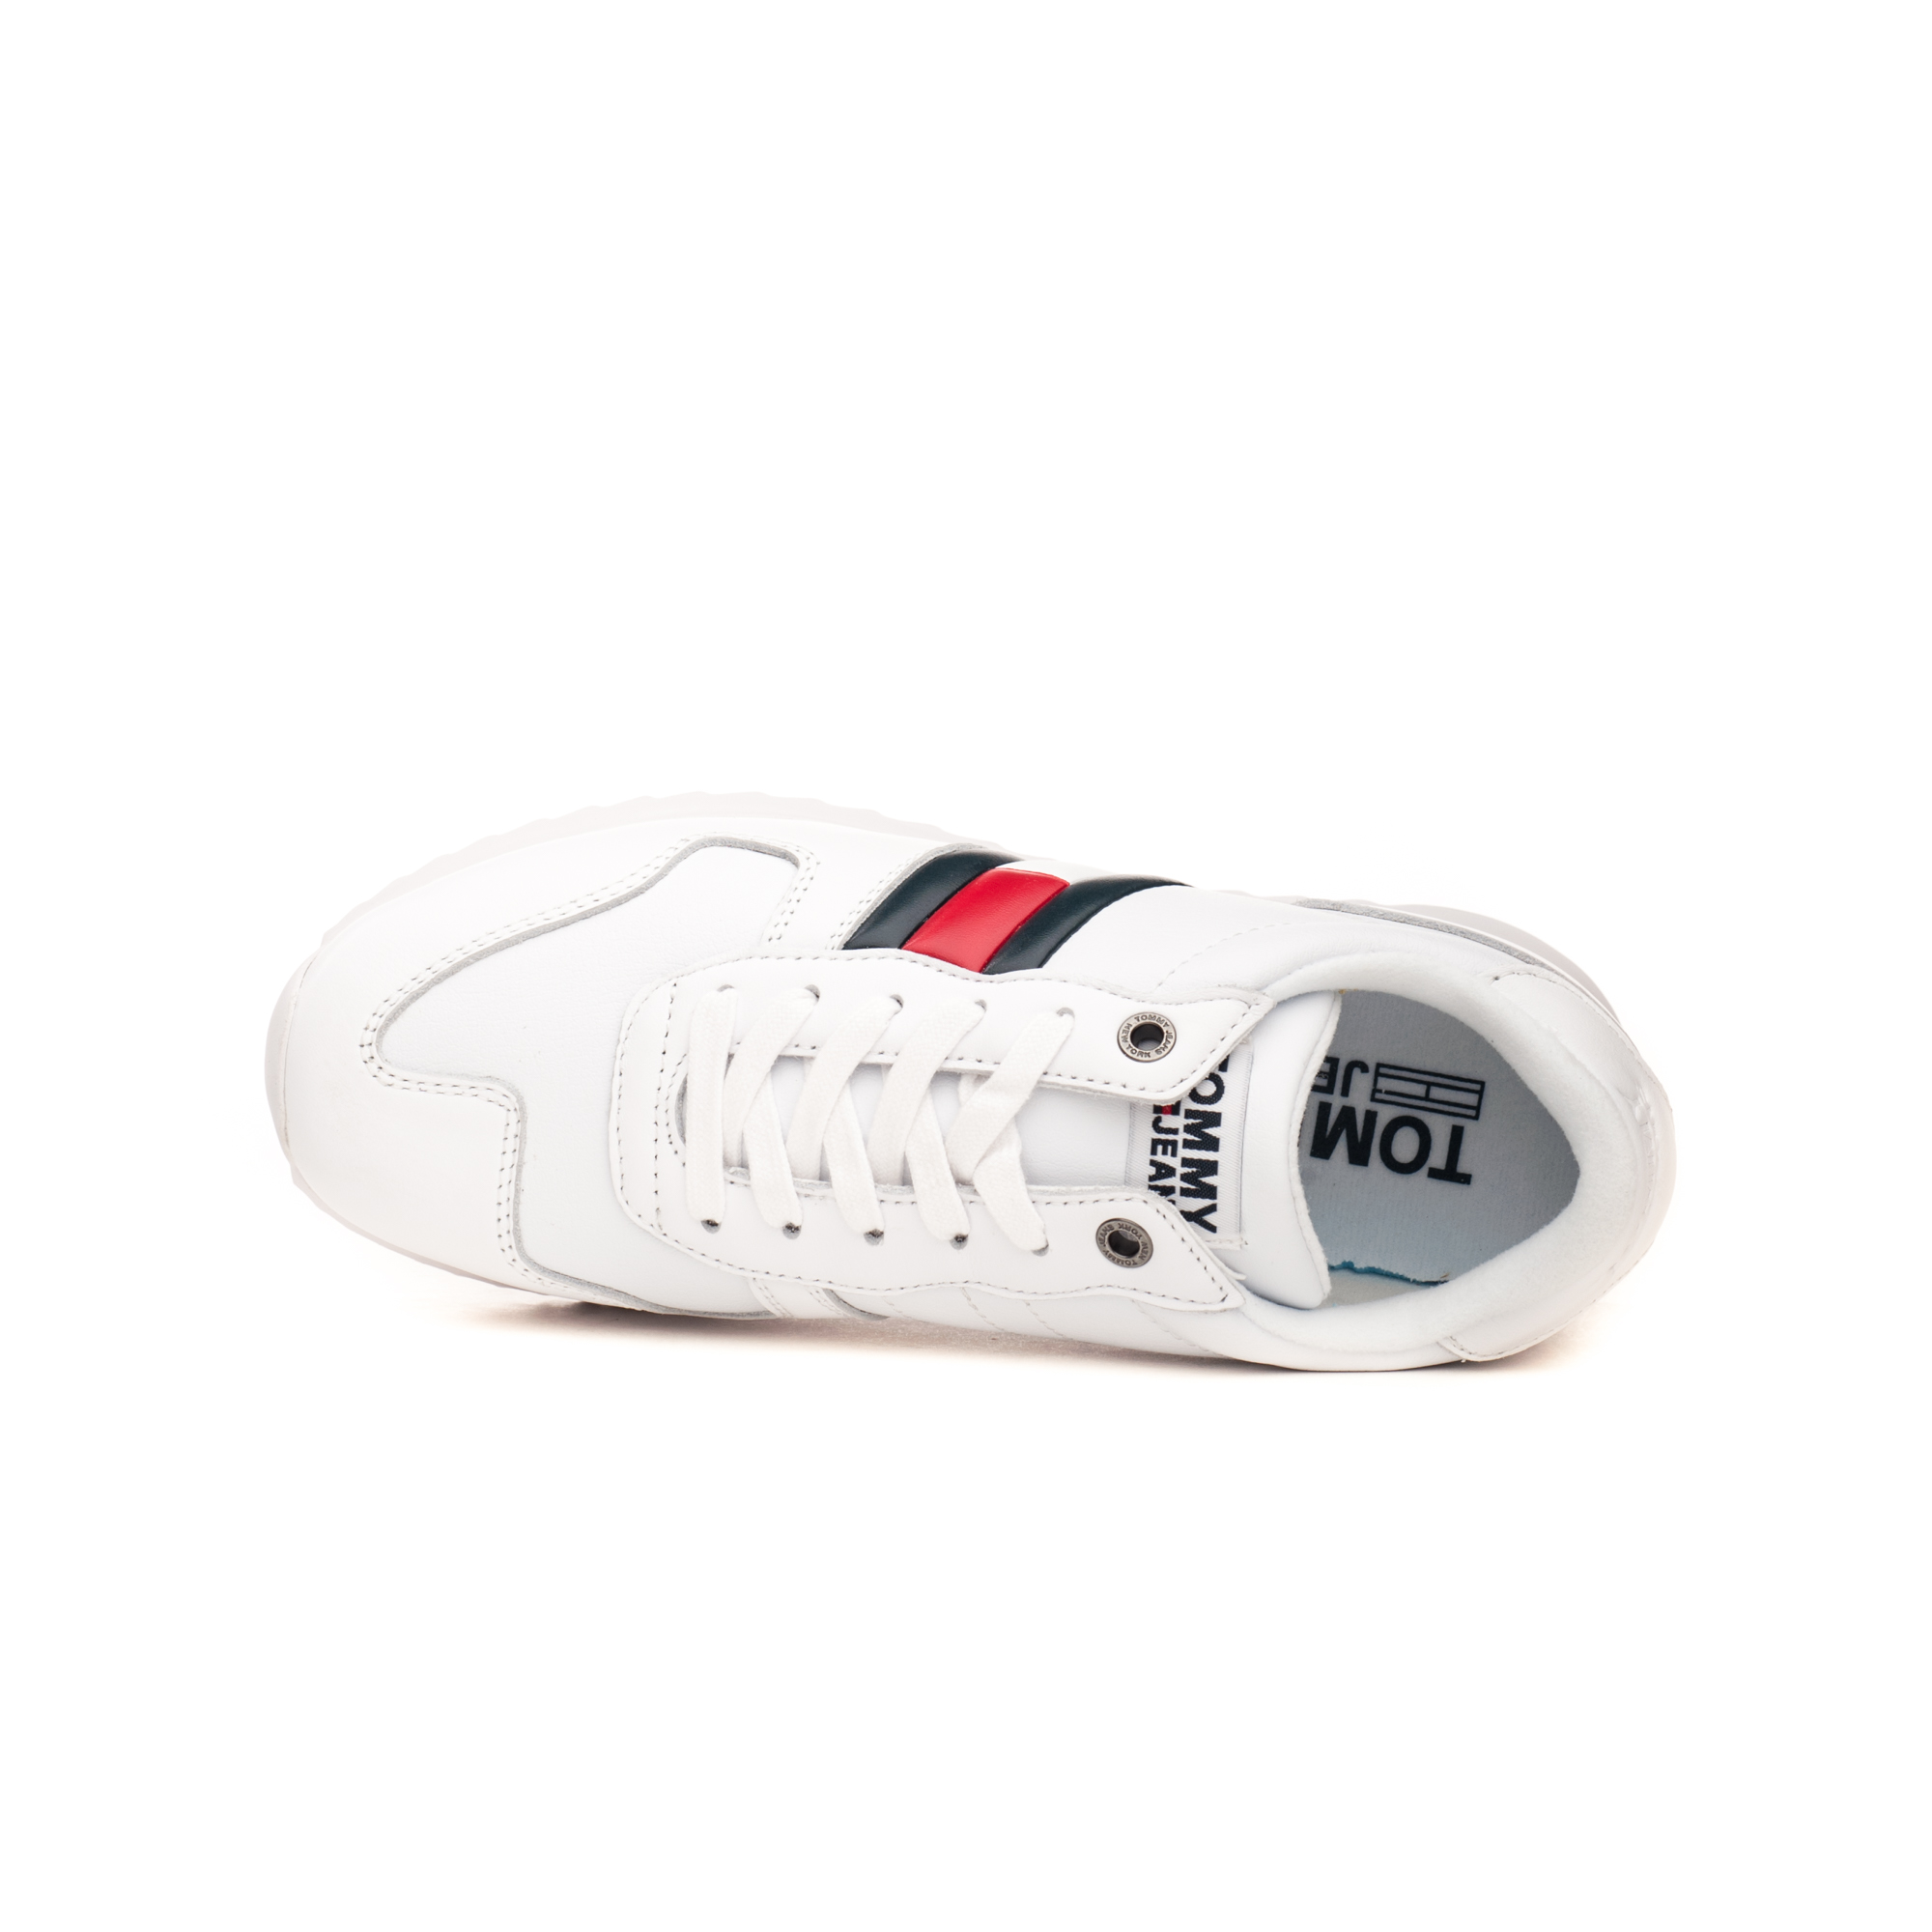 Кросівки жіночі Tommy Hilfiger HIGH CLEATED CORPORATE